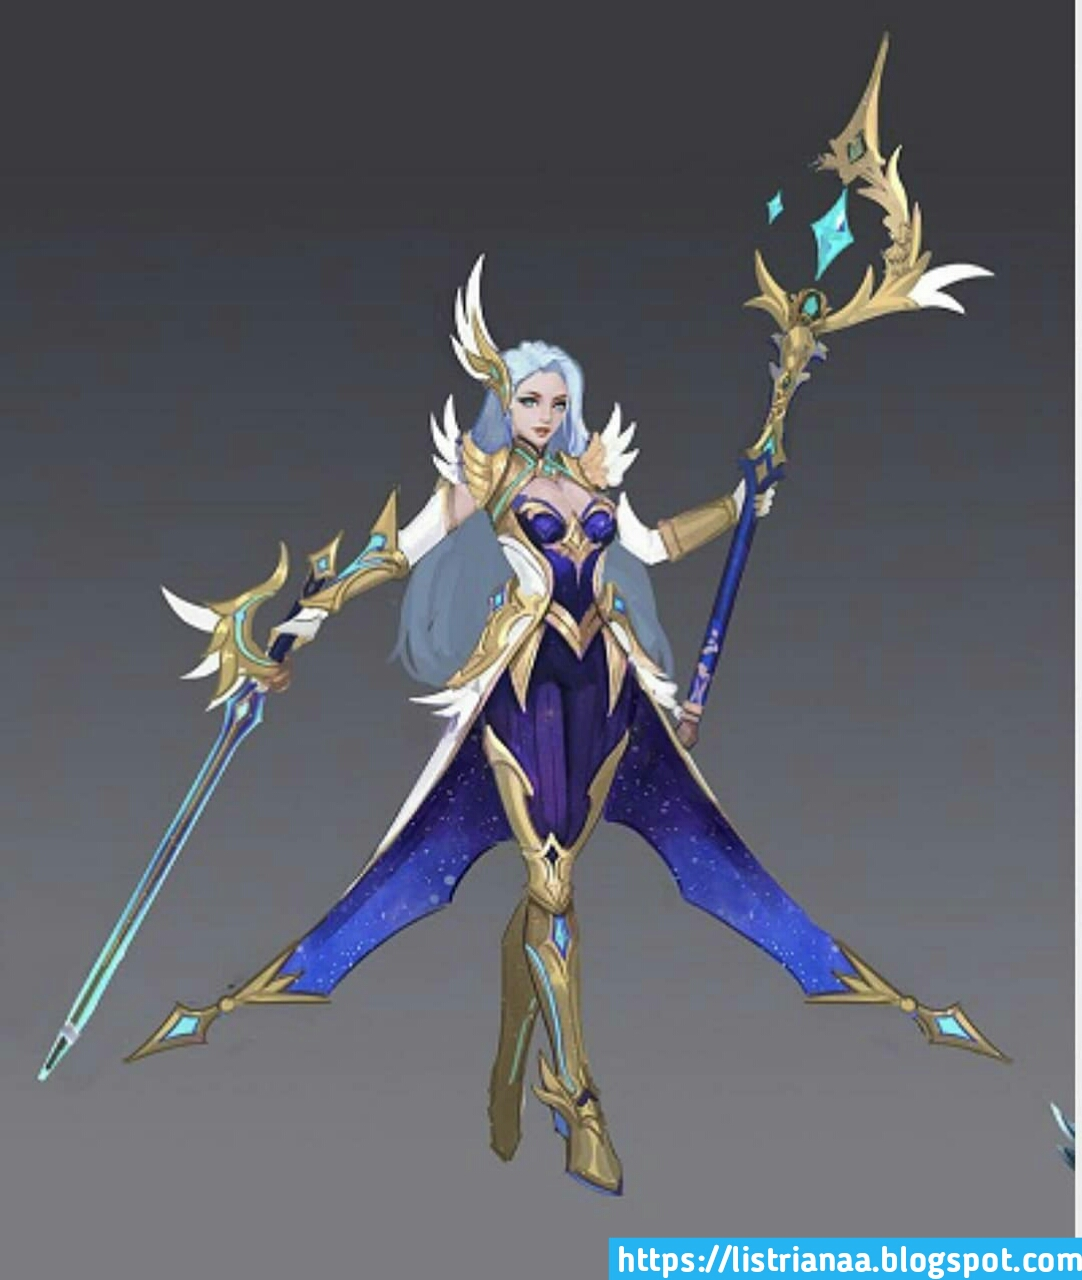 Bocoran Tampilan Skin Zodiak Odette Mobile Legends 2